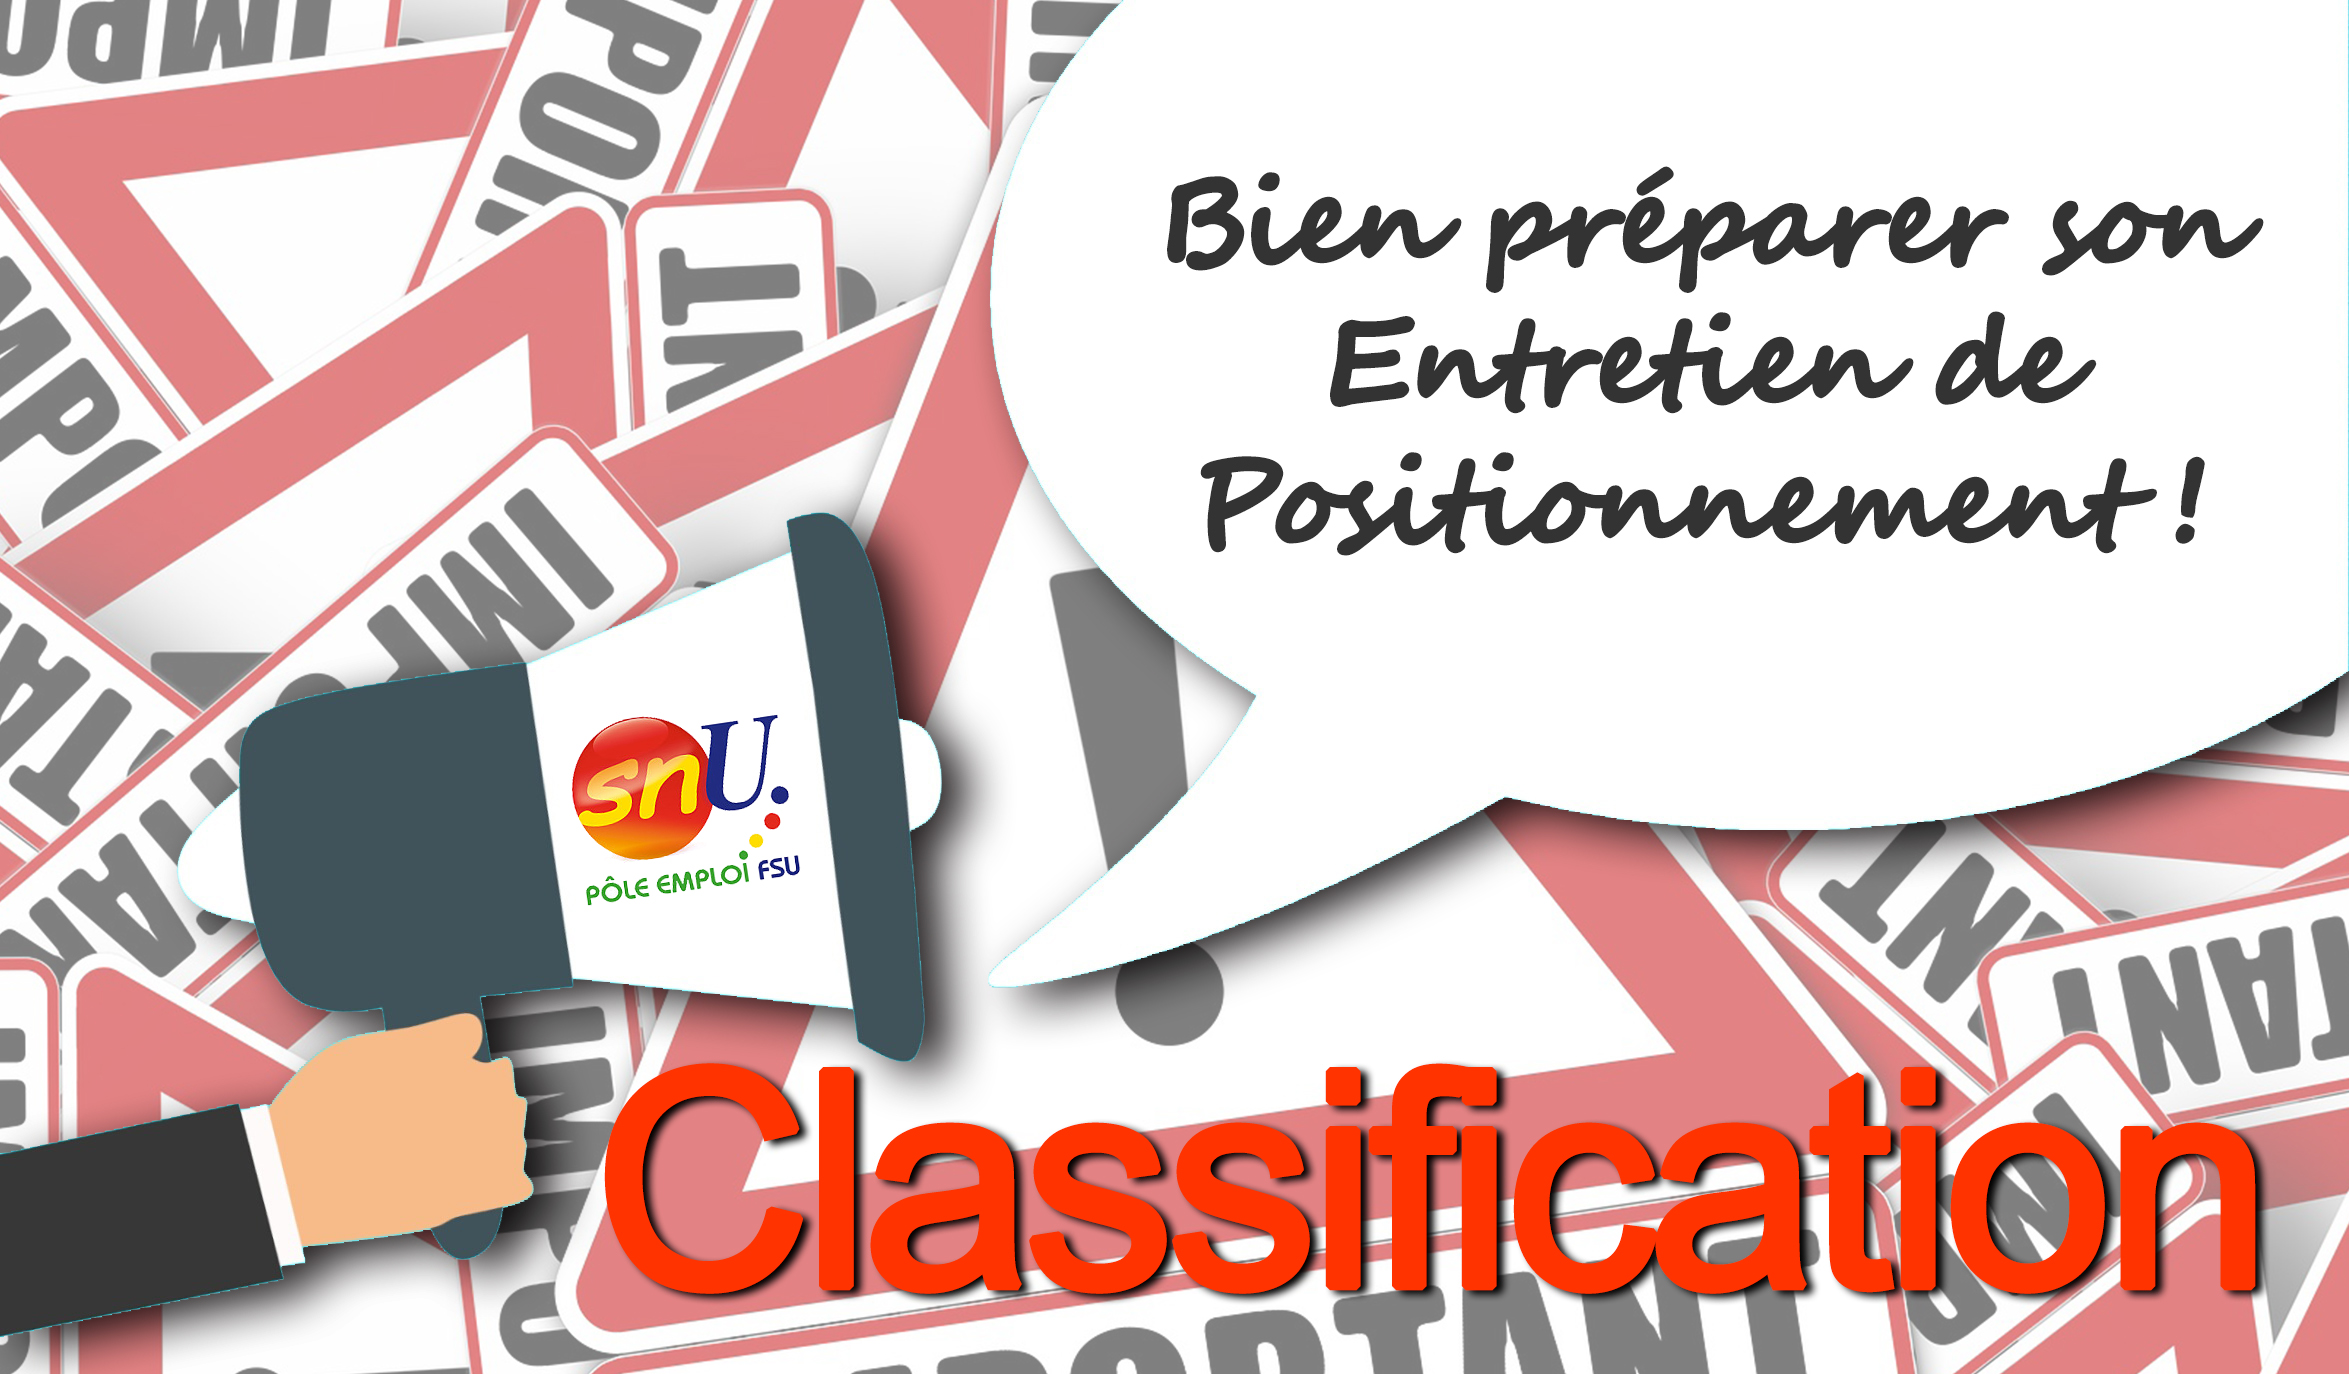 Classification : Positionnement et recours